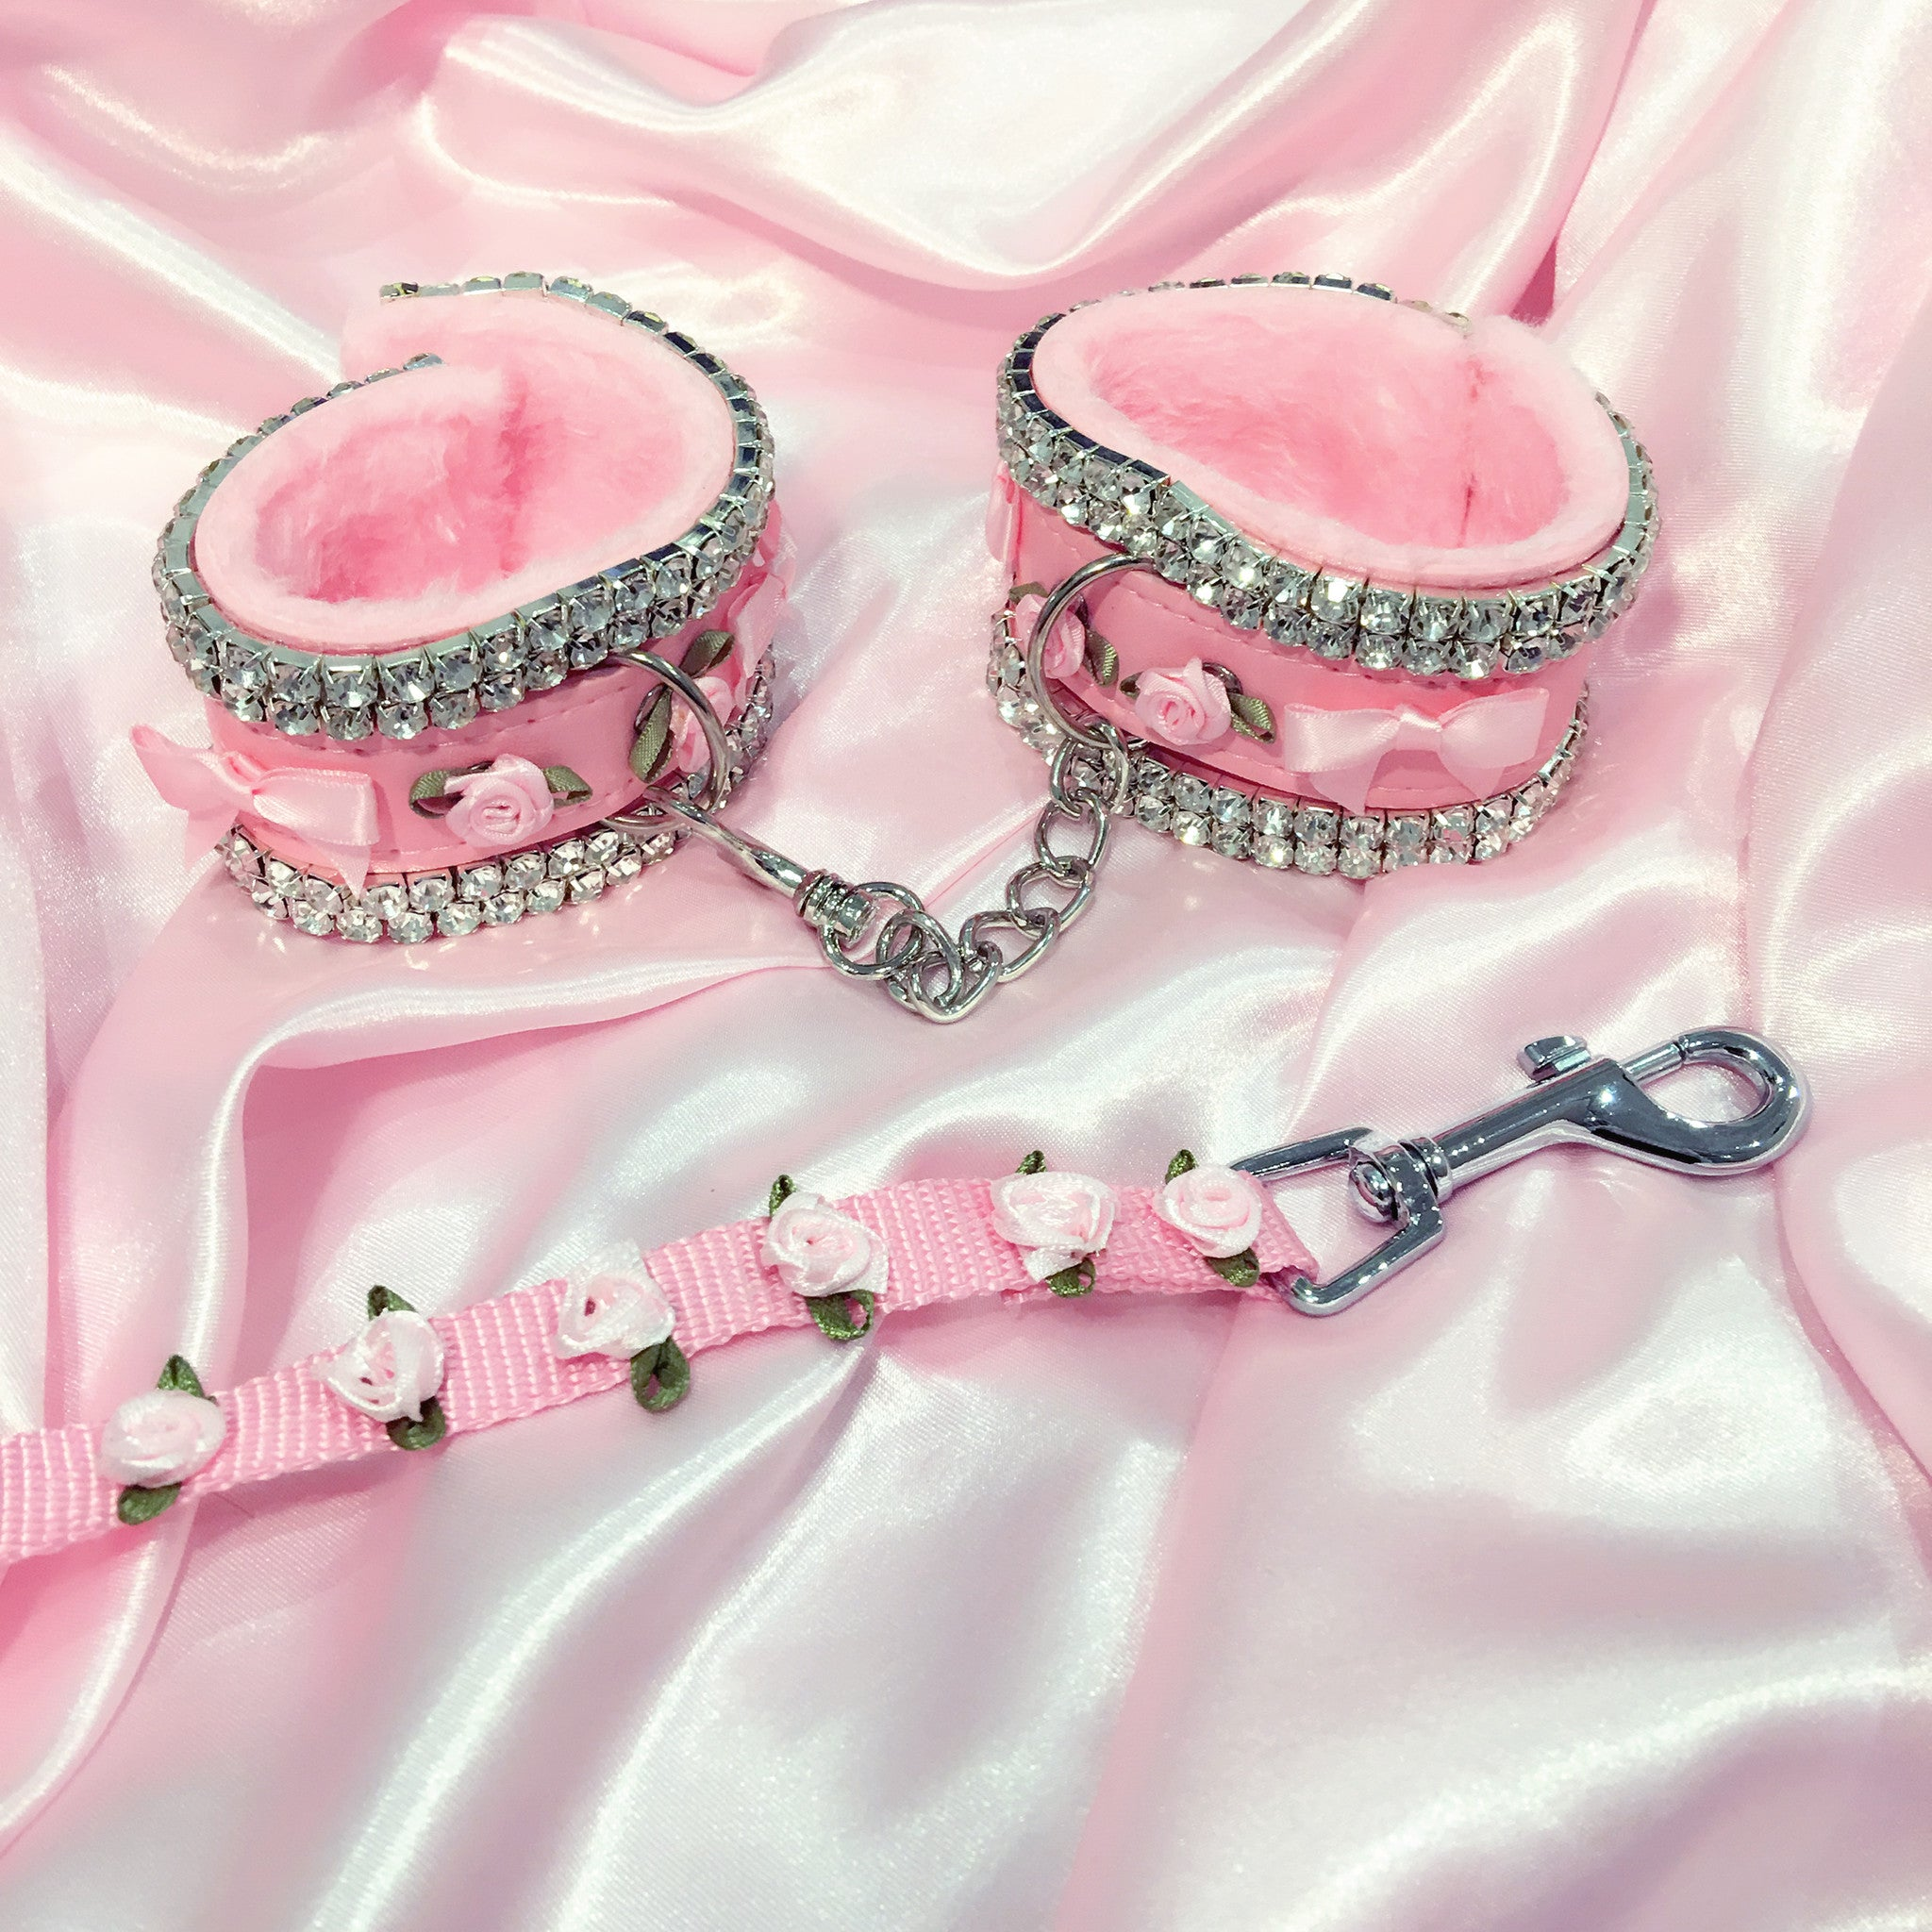 Pink Handcuffs with Diamond Crystals Roses Kawaii Pastel Goth by Loves Whore now available at BABYVOODOO.COM - shop now Baby Voodoo Kawaii Kink Fashion and accessories ♥ princess style lolita ddlg